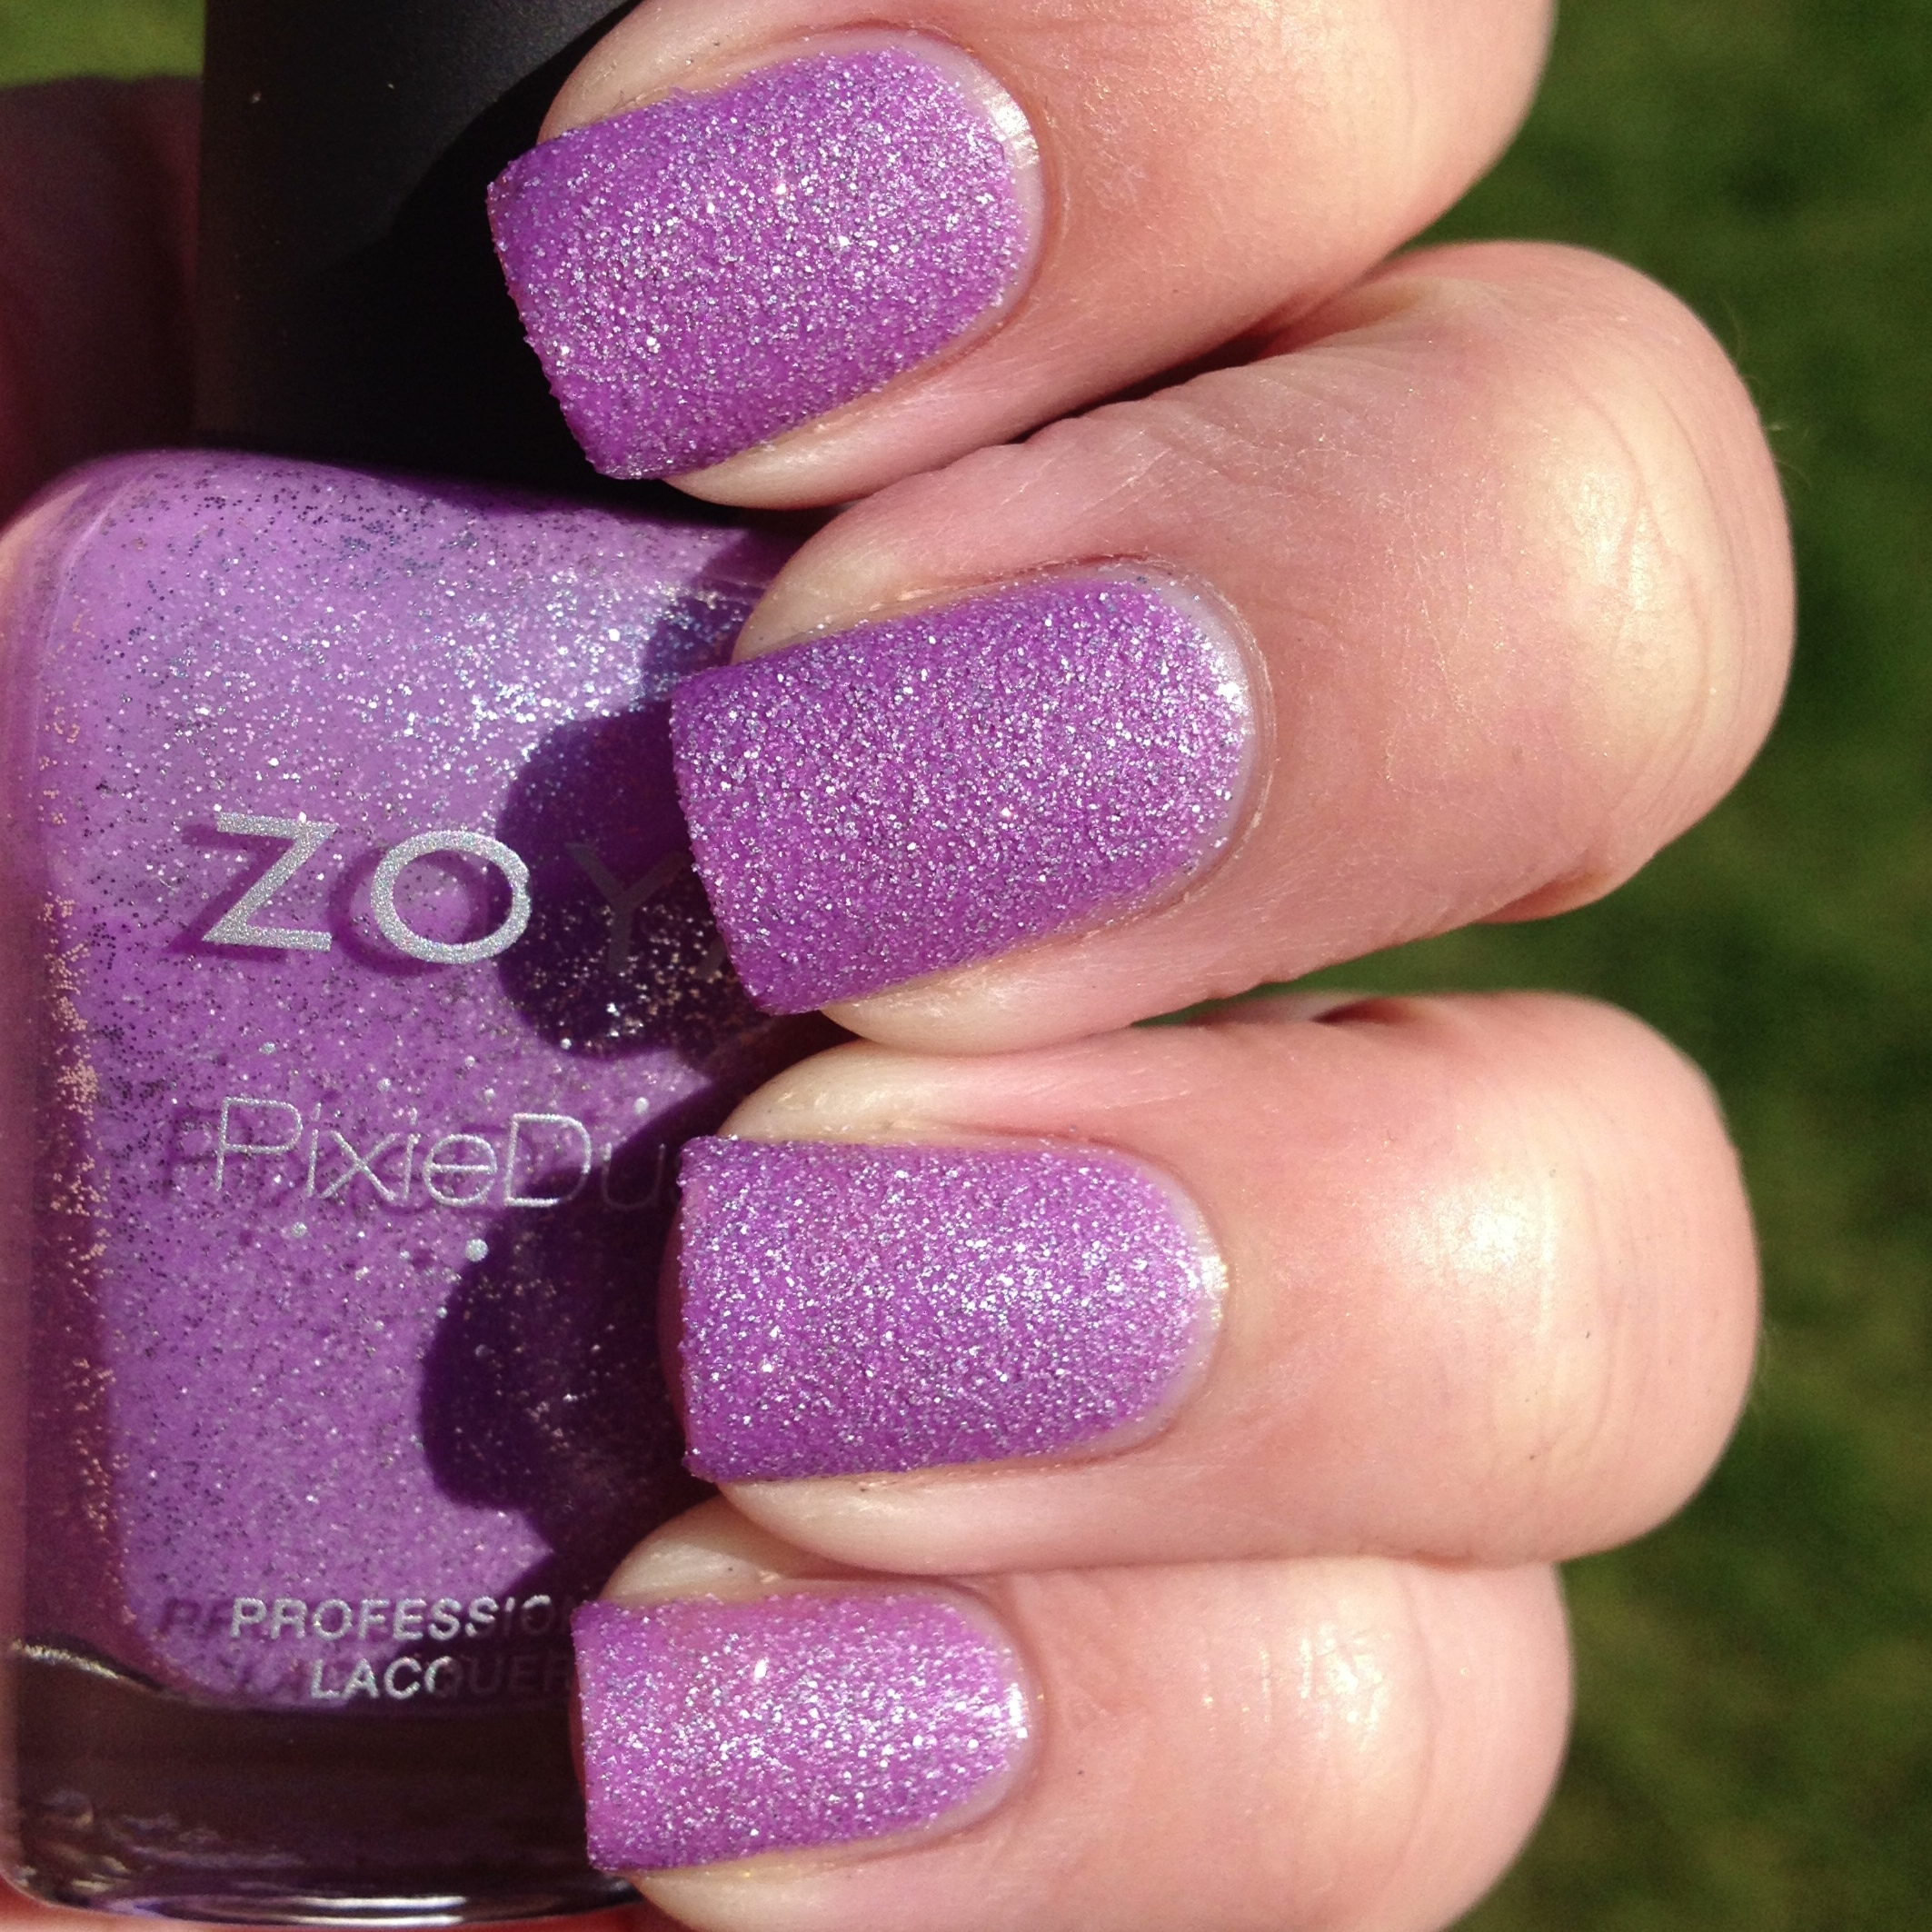 Zoya Summer 2013 Pixie Dust Collection The Matte Sparkle Polishes